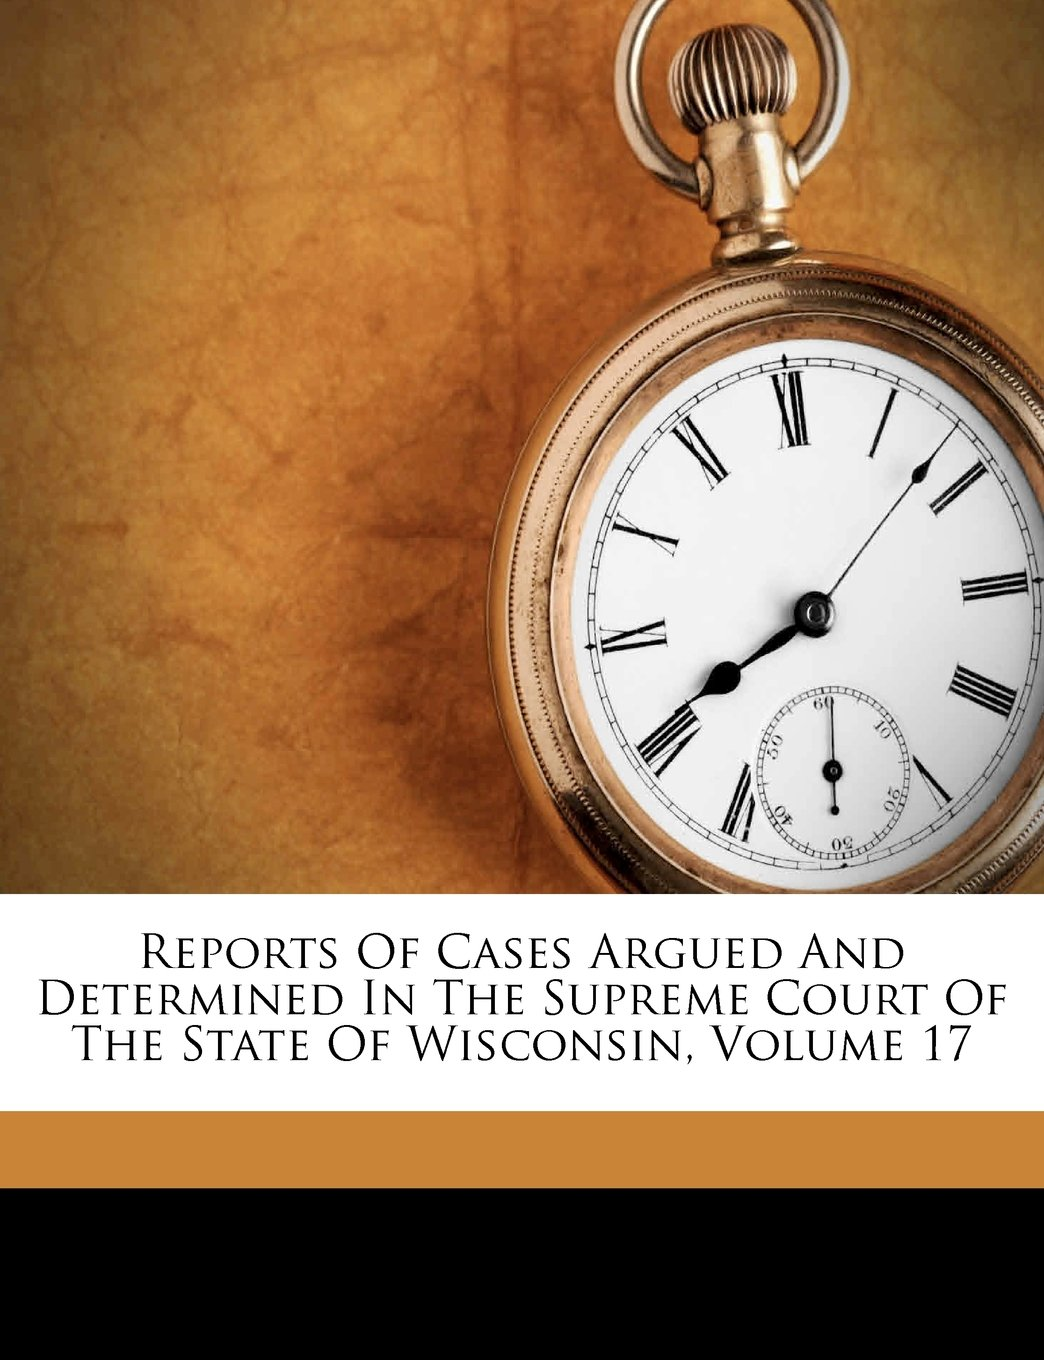 Download Reports Of Cases Argued And Determined In The Supreme Court Of The State Of Wisconsin, Volume 17 ebook